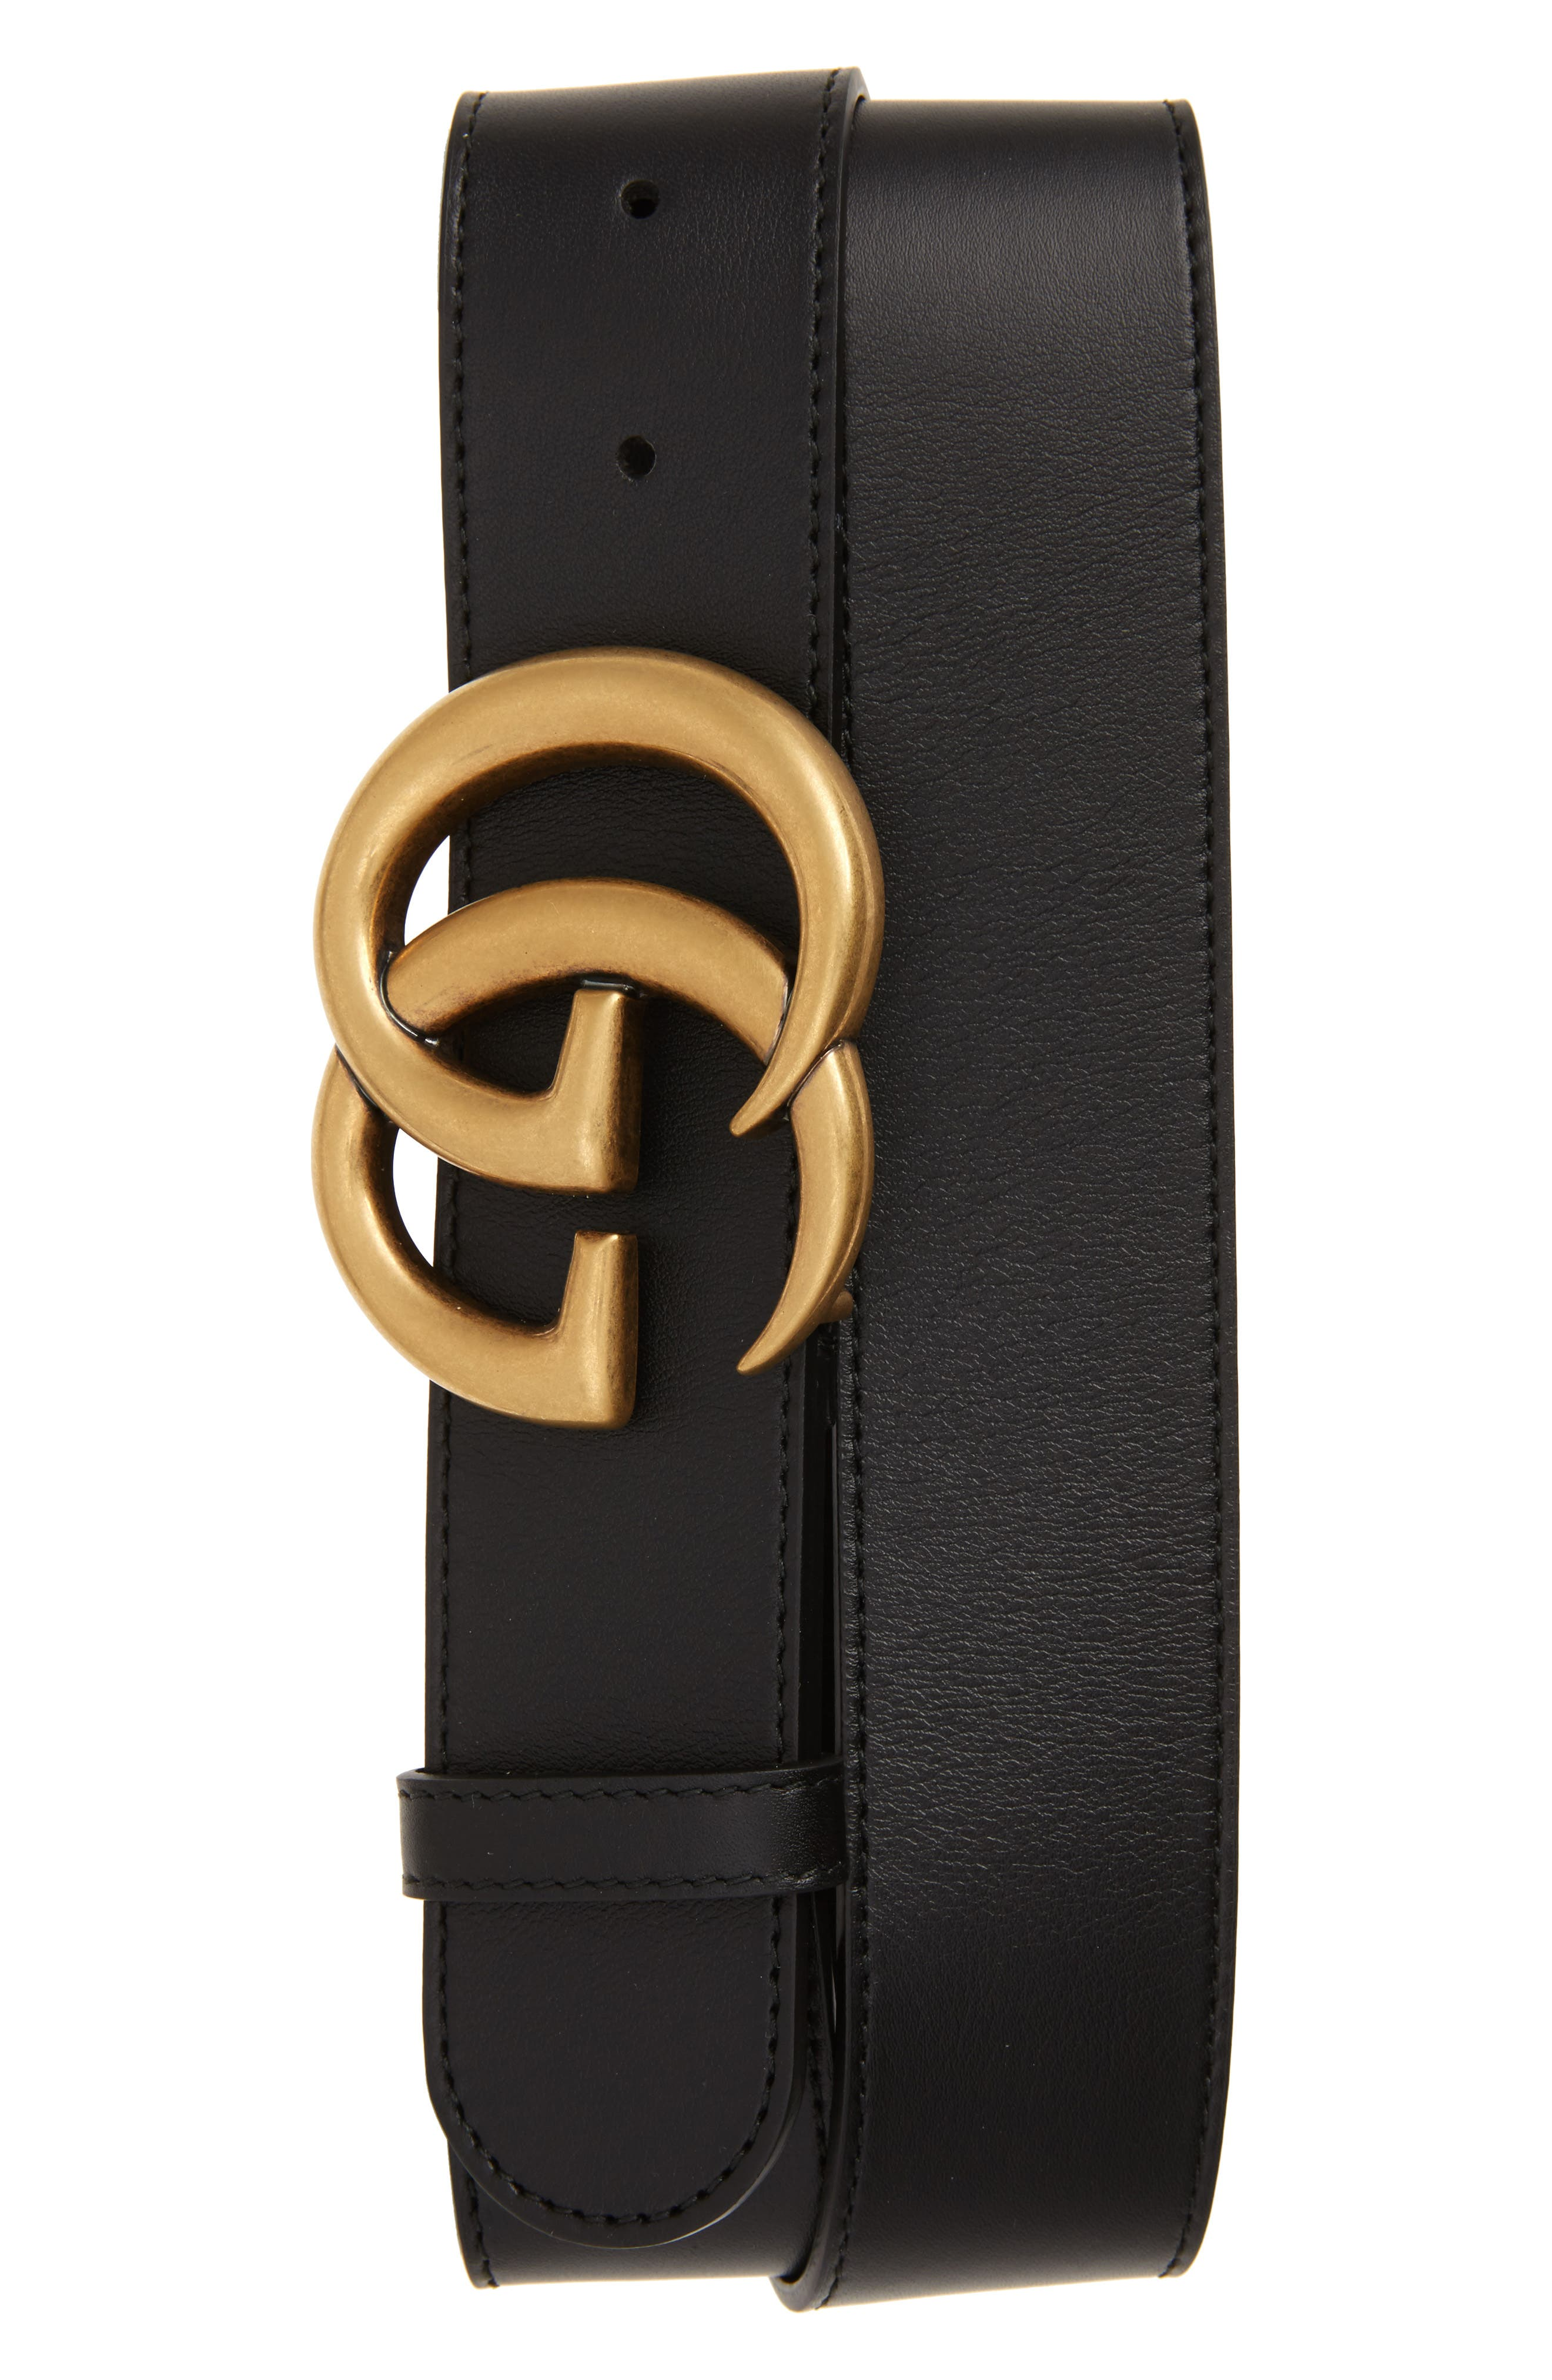 7c8804584ad gucci belt